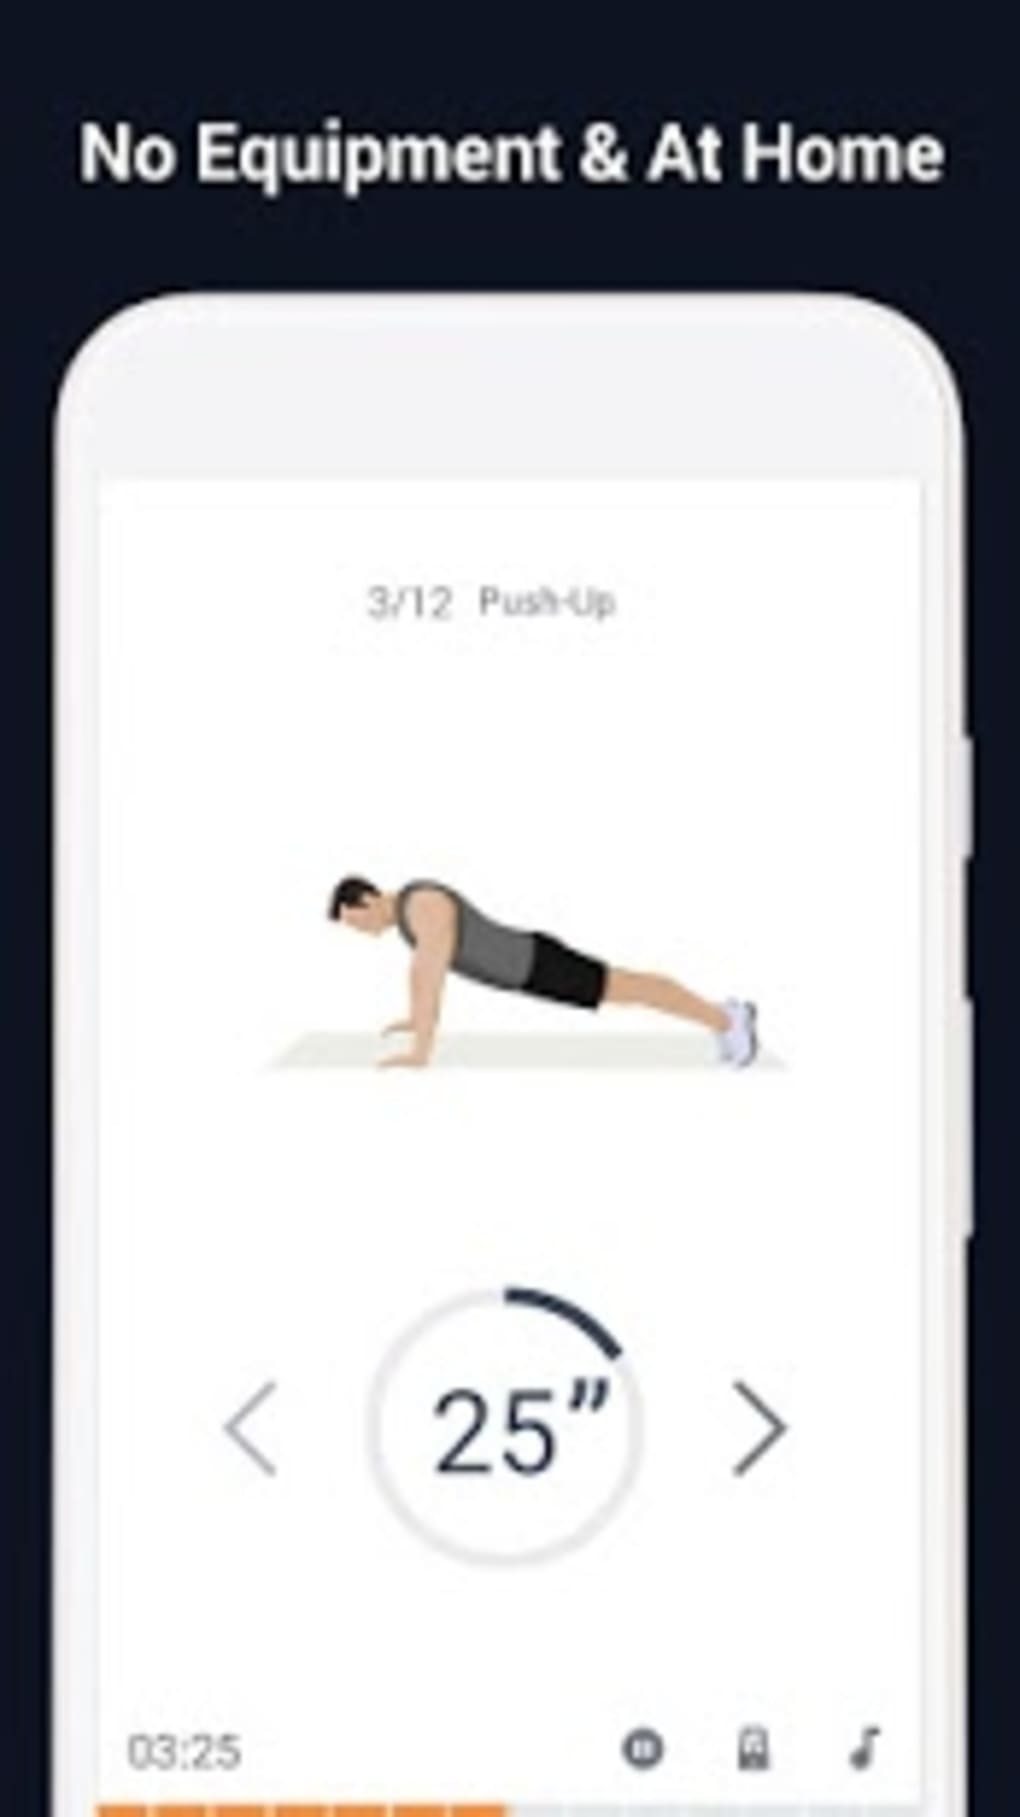 Manfit Workout At Home With No Fitness Equipment For Android Circuit Training Exercises